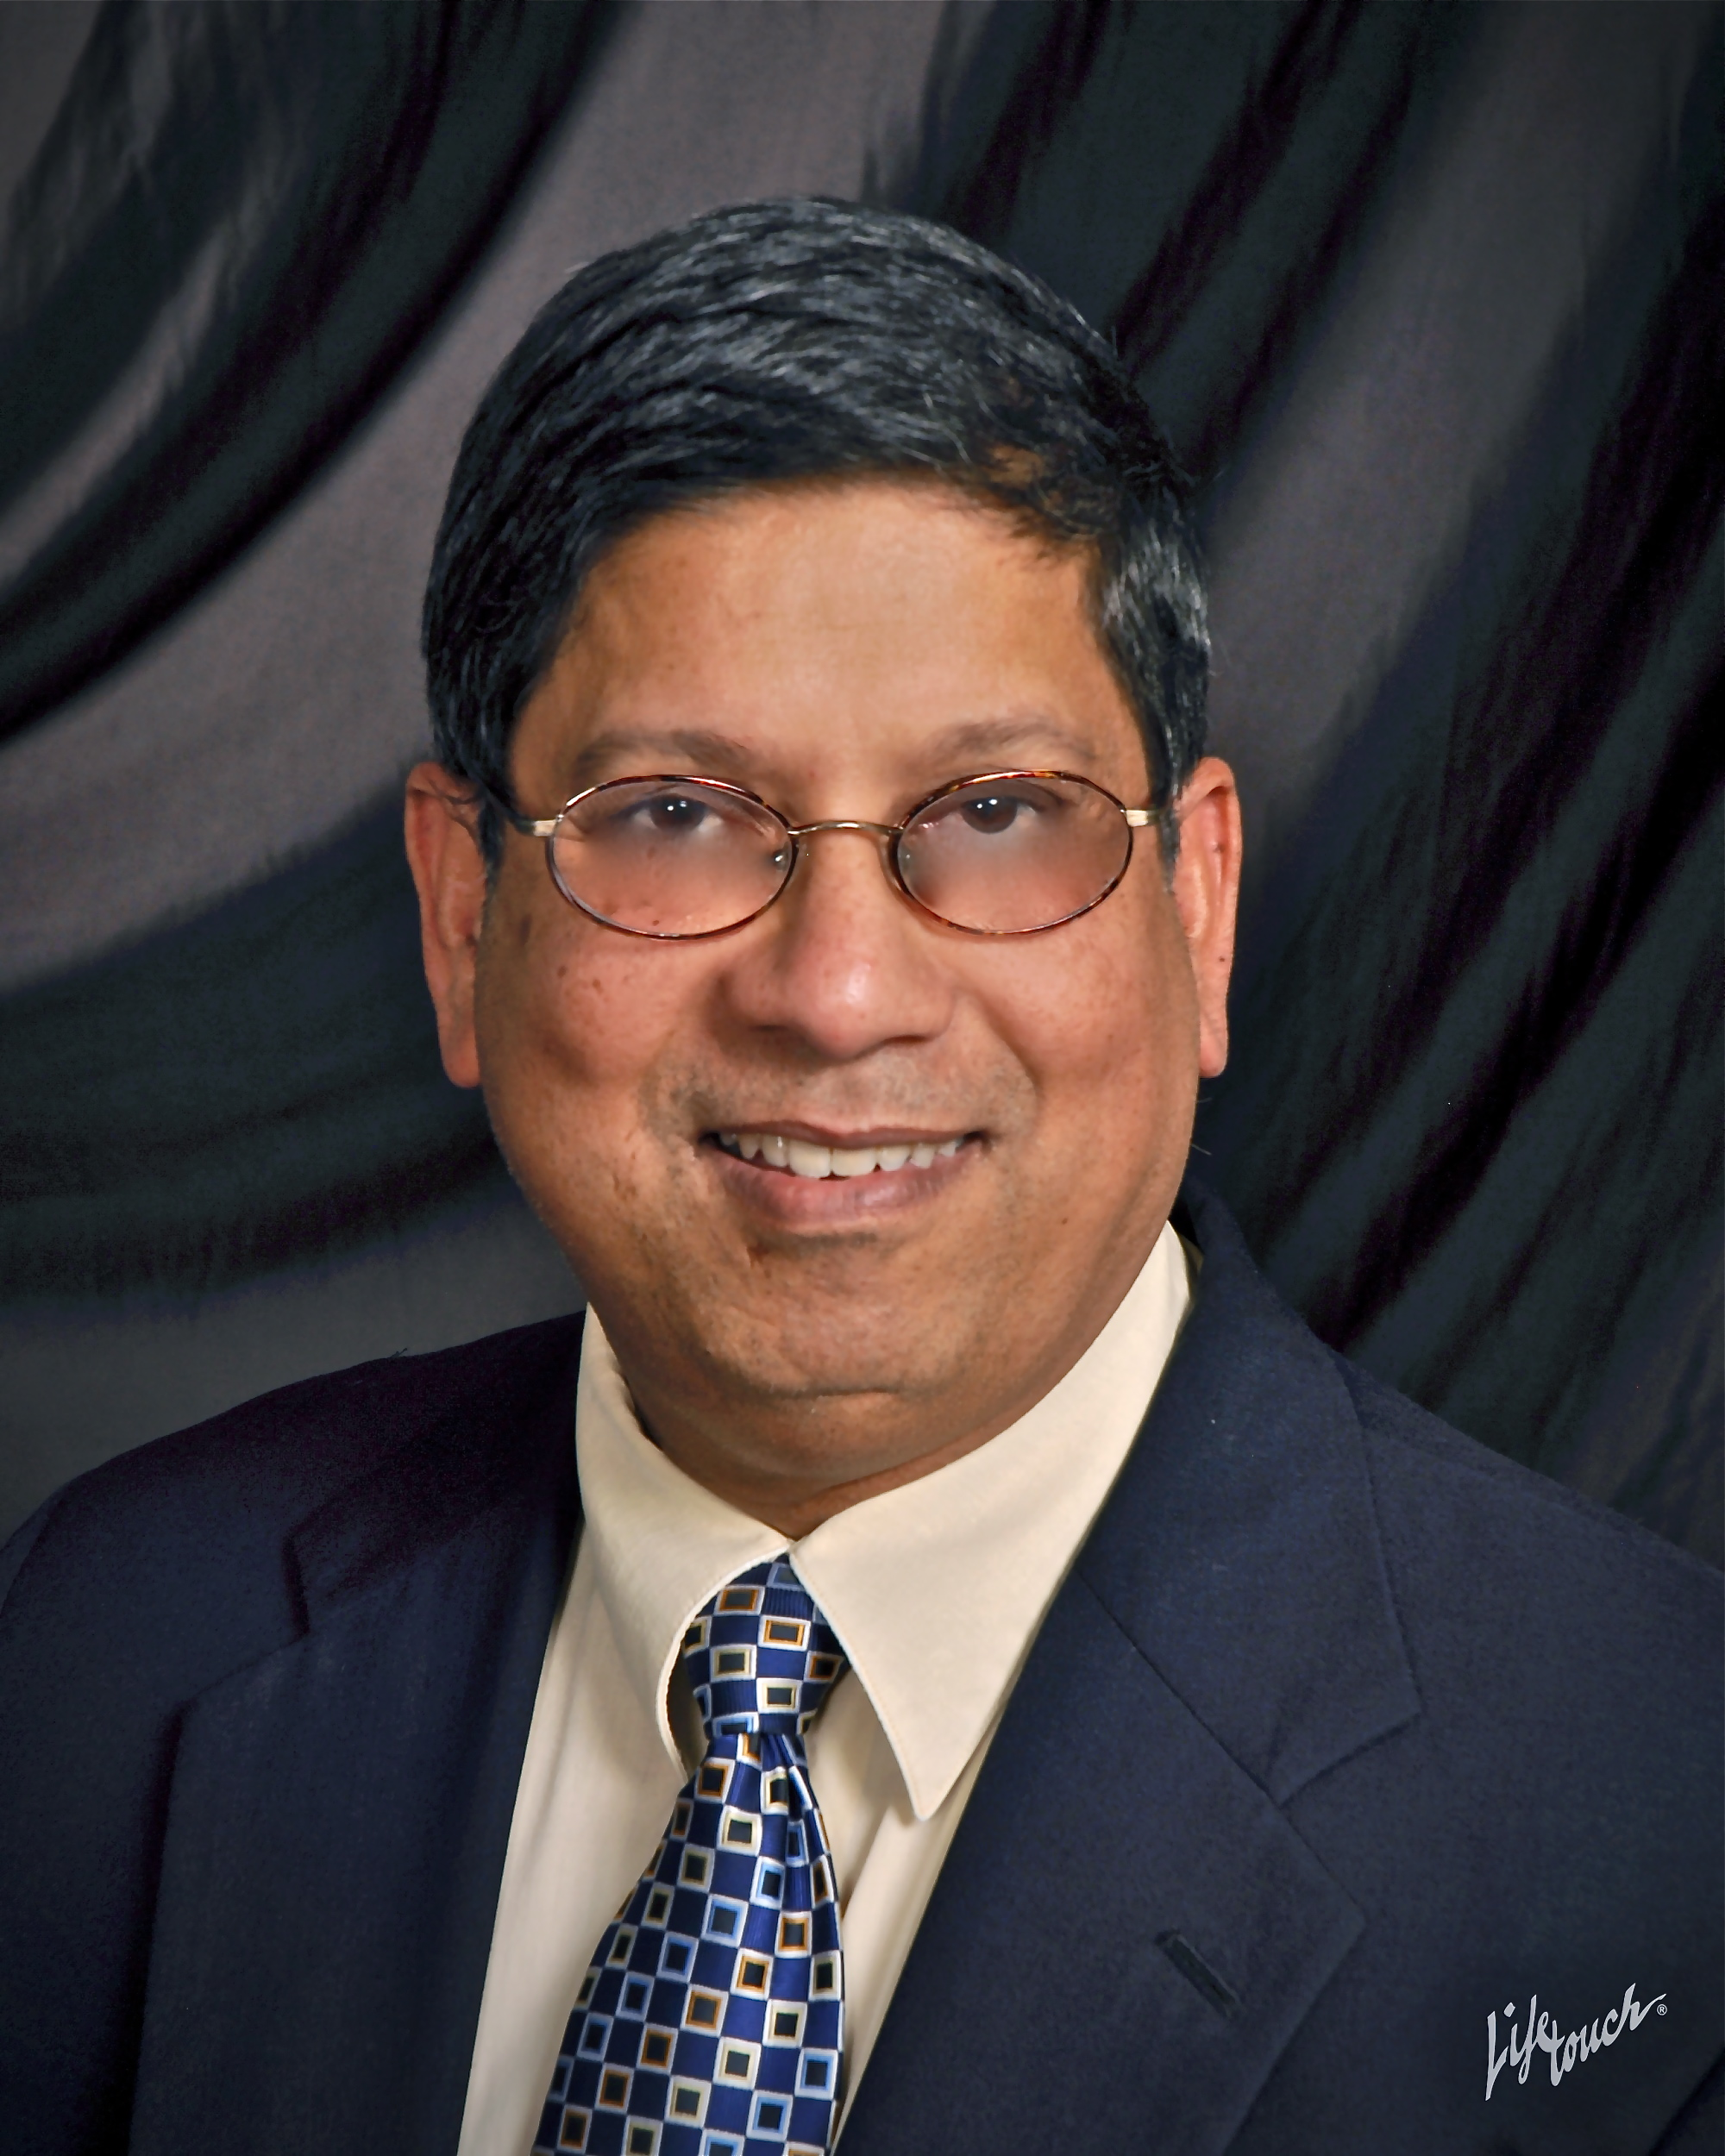 Dilip R. Abayasekara, Ph.D. A.S. Accredited Speaker, Trainer, Speech Coach, Inspirational Speaker, Pres., Dr. Dilip, LLC